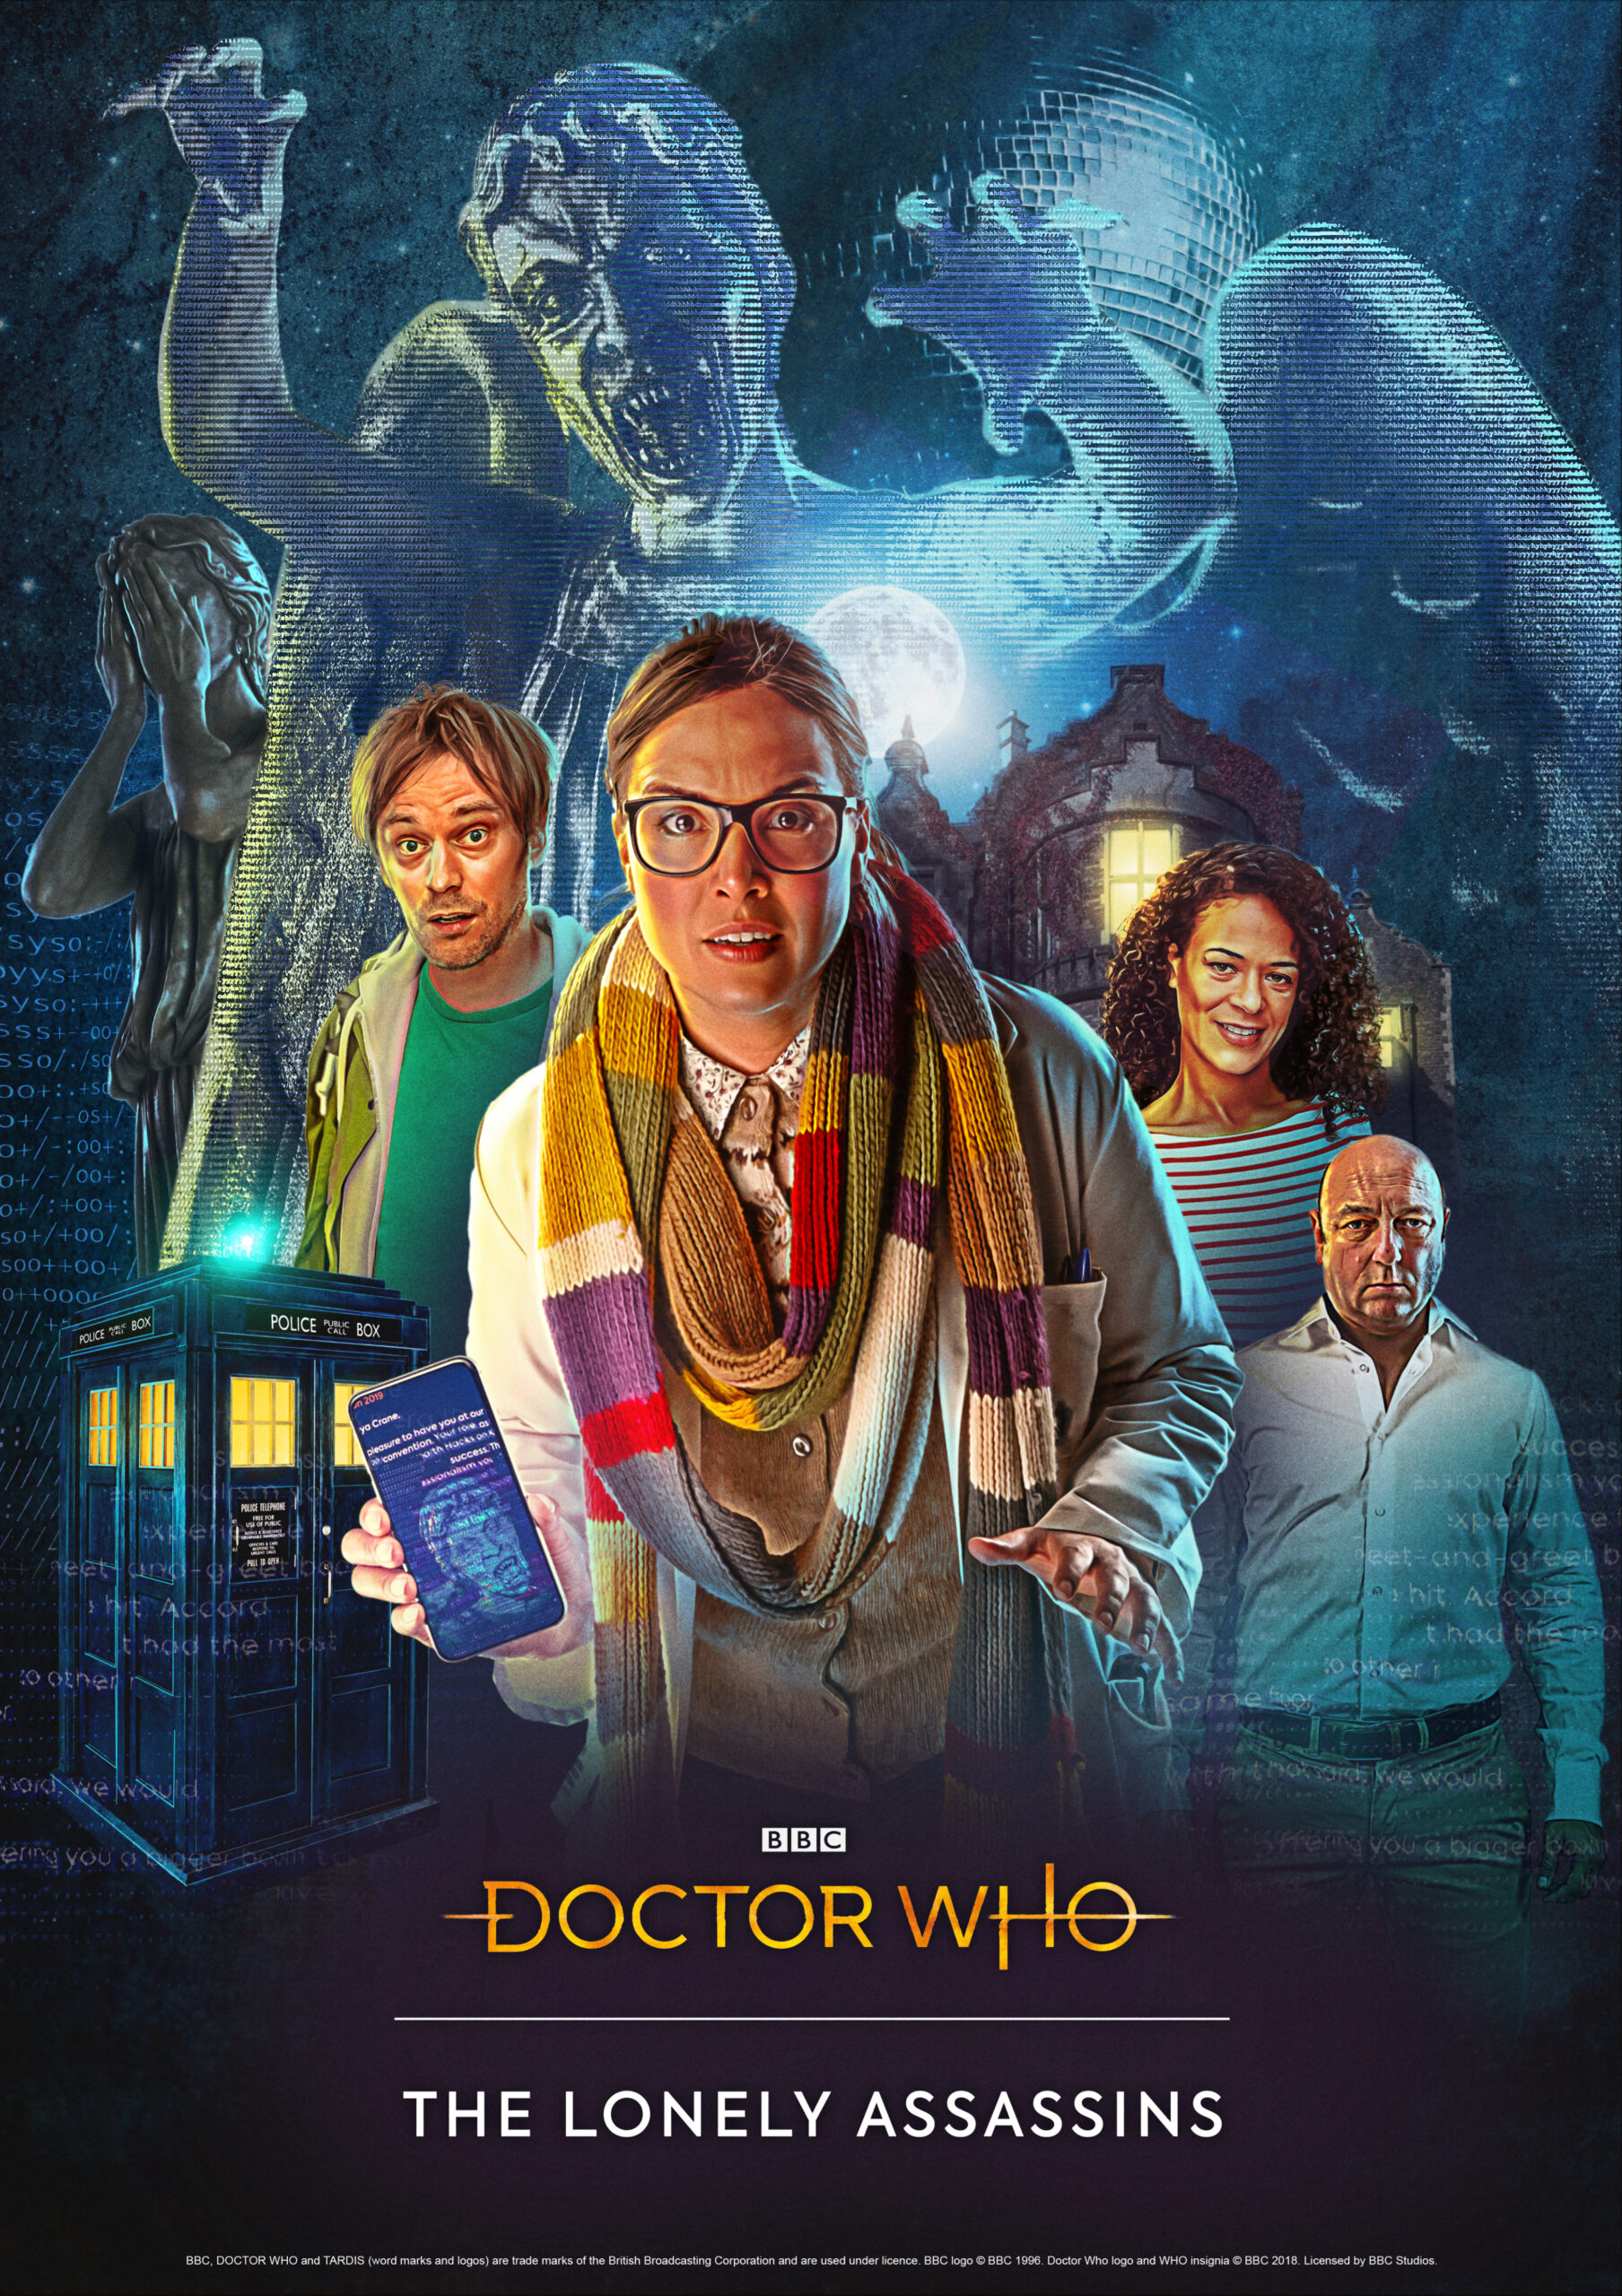 Doctor Who_ The Lonely Assassins – poster by Lee Binding